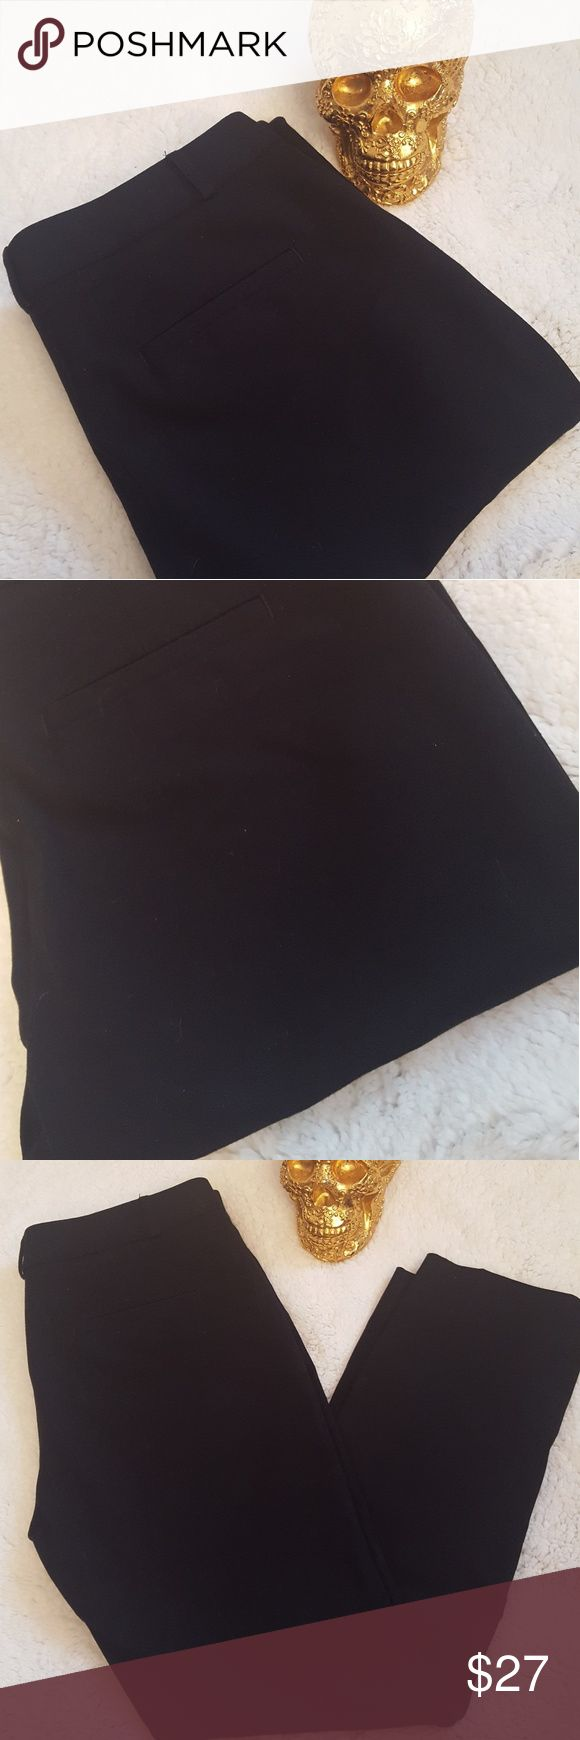 Banana Republic Black Dress Slacks Pants Black straight leg dress slacks pants from Banana Republic. Very classy. Has front crease in them. Look like maybe they have not been worn at all. Size 6. Non smoking home. Banana Republic Pants Straight Leg